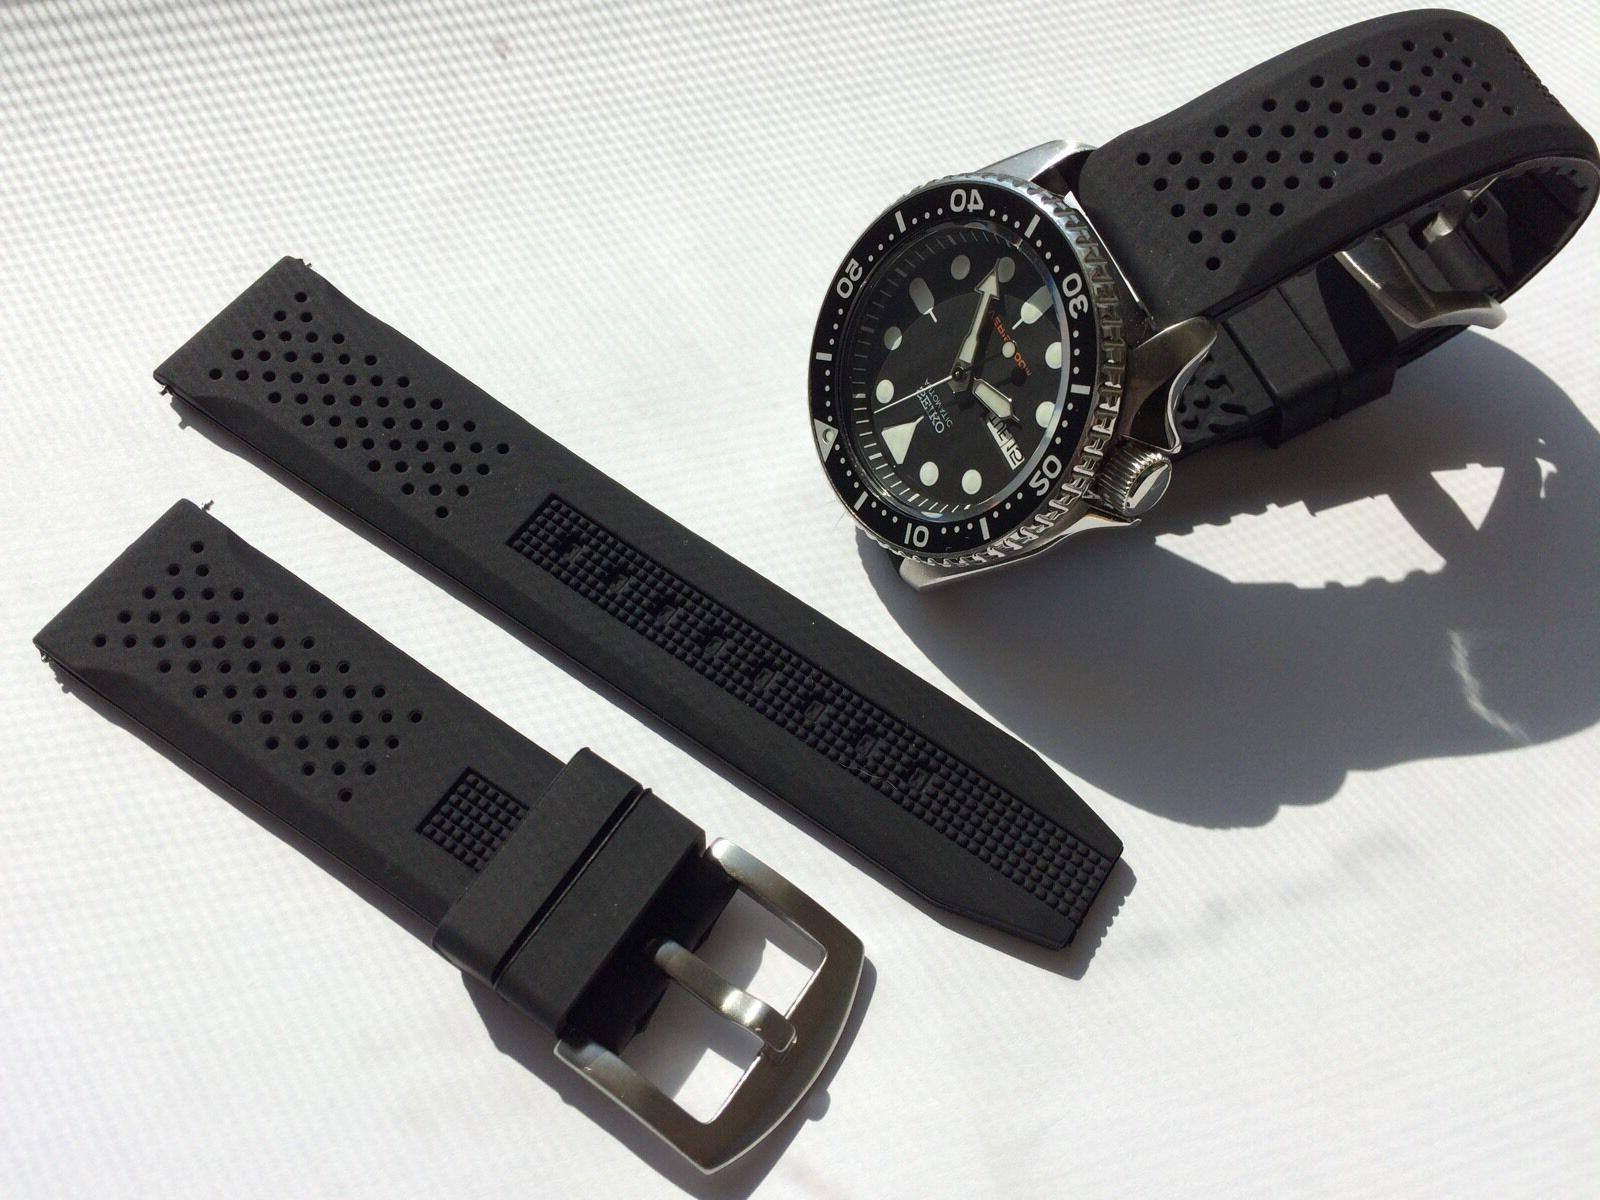 22mm Silicone Watch Band Seiko Scuba fit 22mm